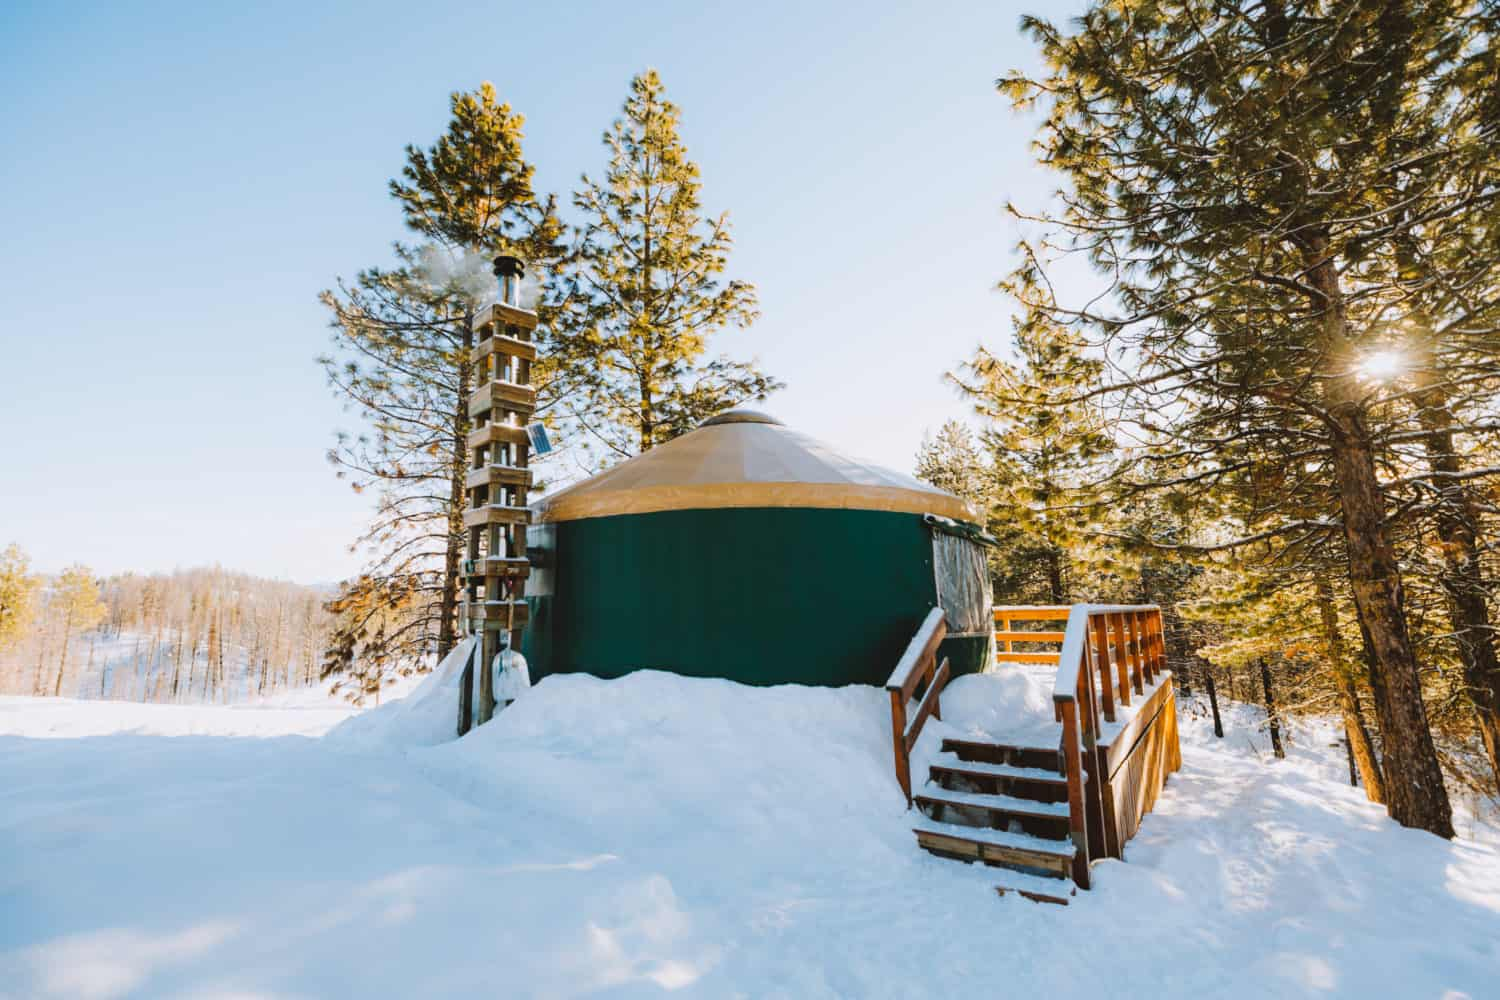 exterior view of Skyline yurt with shovels